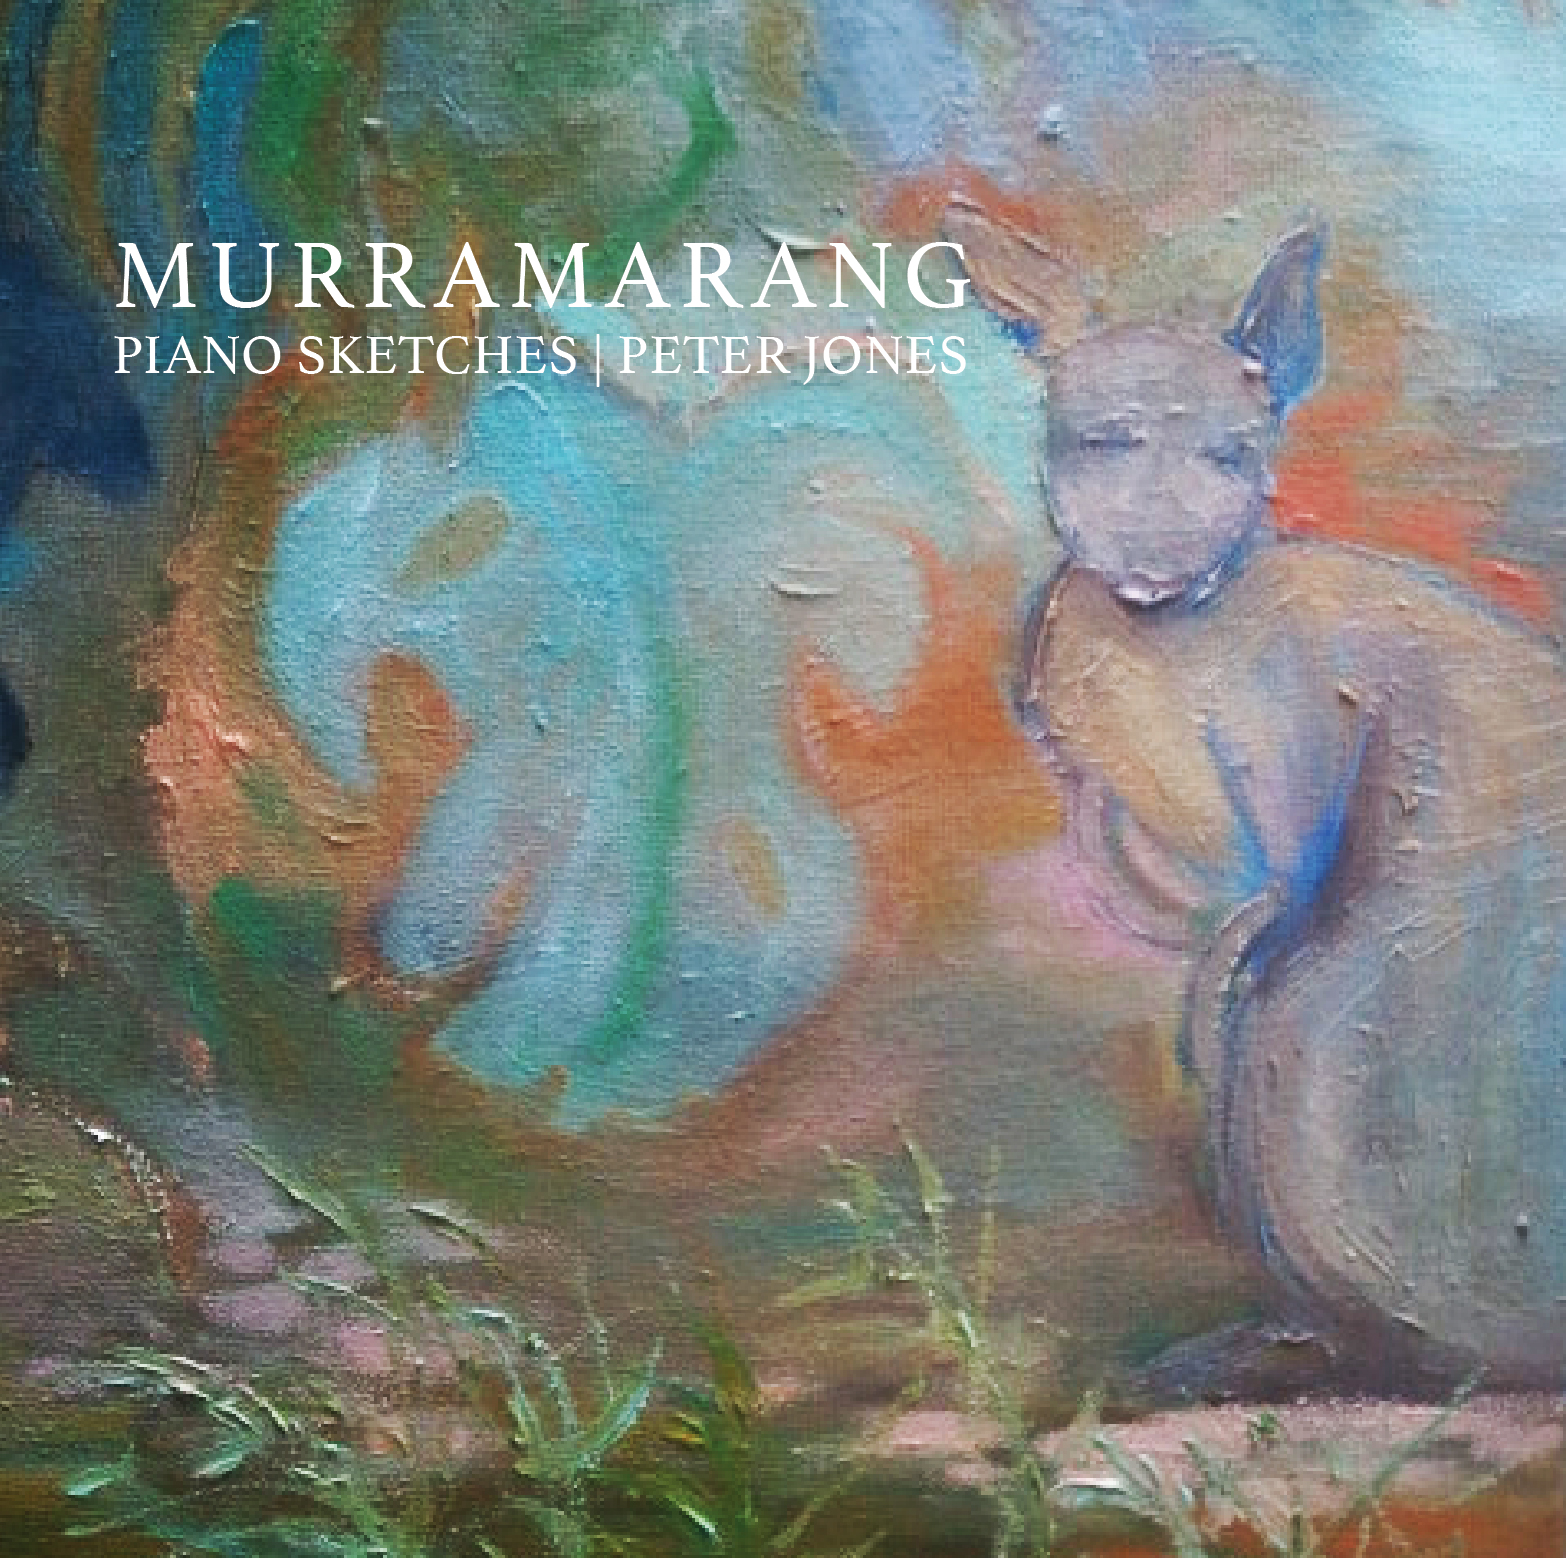 Murramarang, Piano Sketches Album Art for Peter Jones 2017